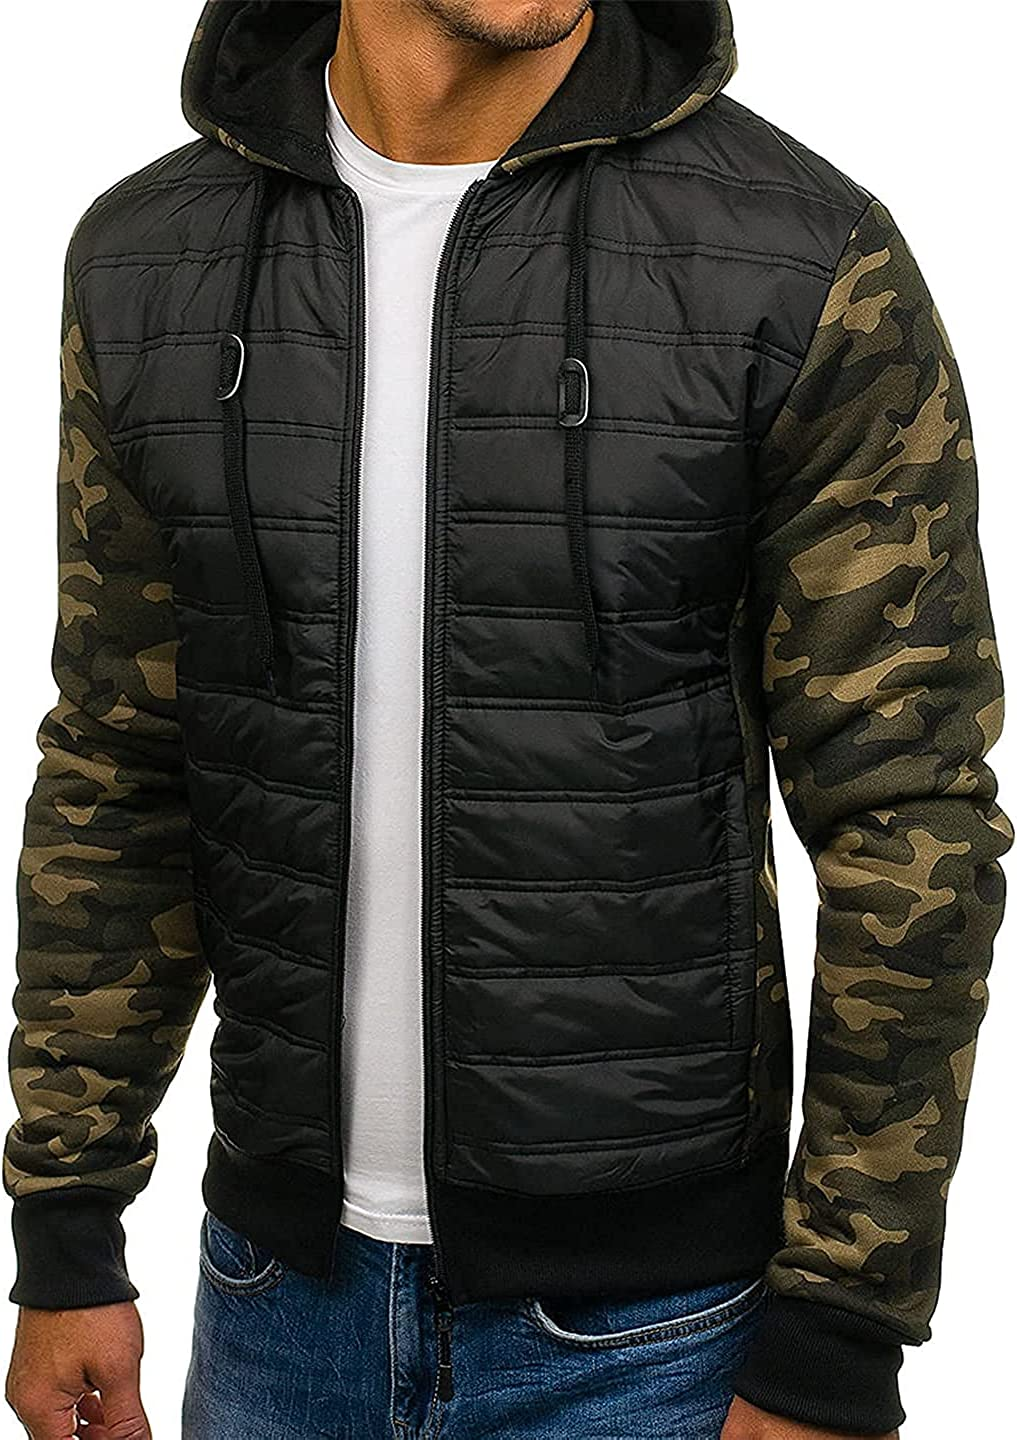 CHENX1NN Men Winter Hoodie Jacket Casual Plus Size Full Sleeve Patchwork Parka